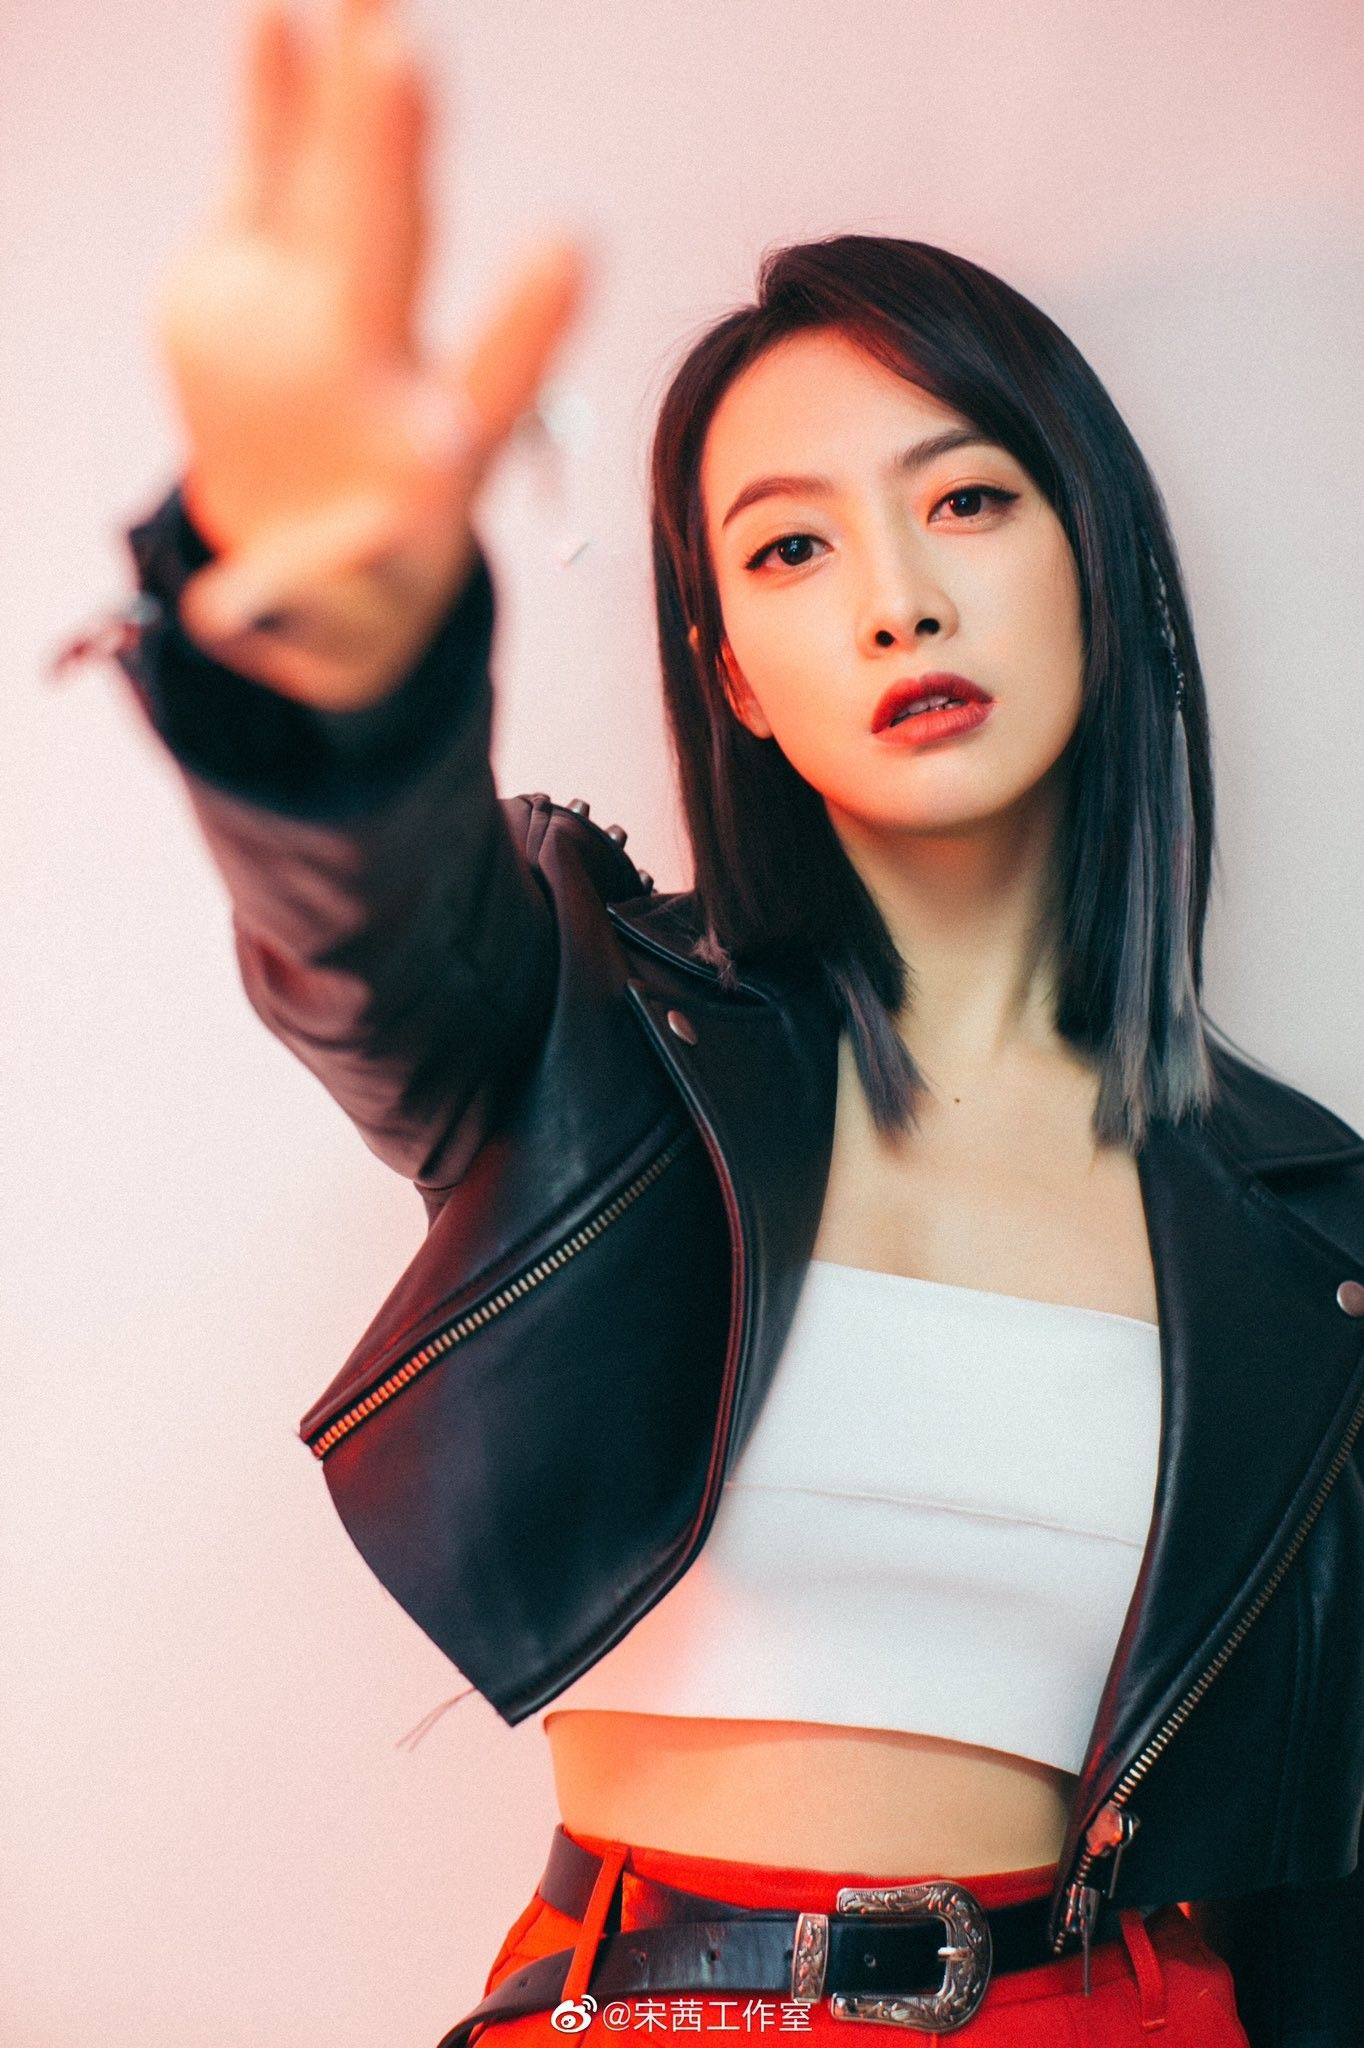 Pin by Lyn on f(x)   Victoria fx, Victoria song, Victoria